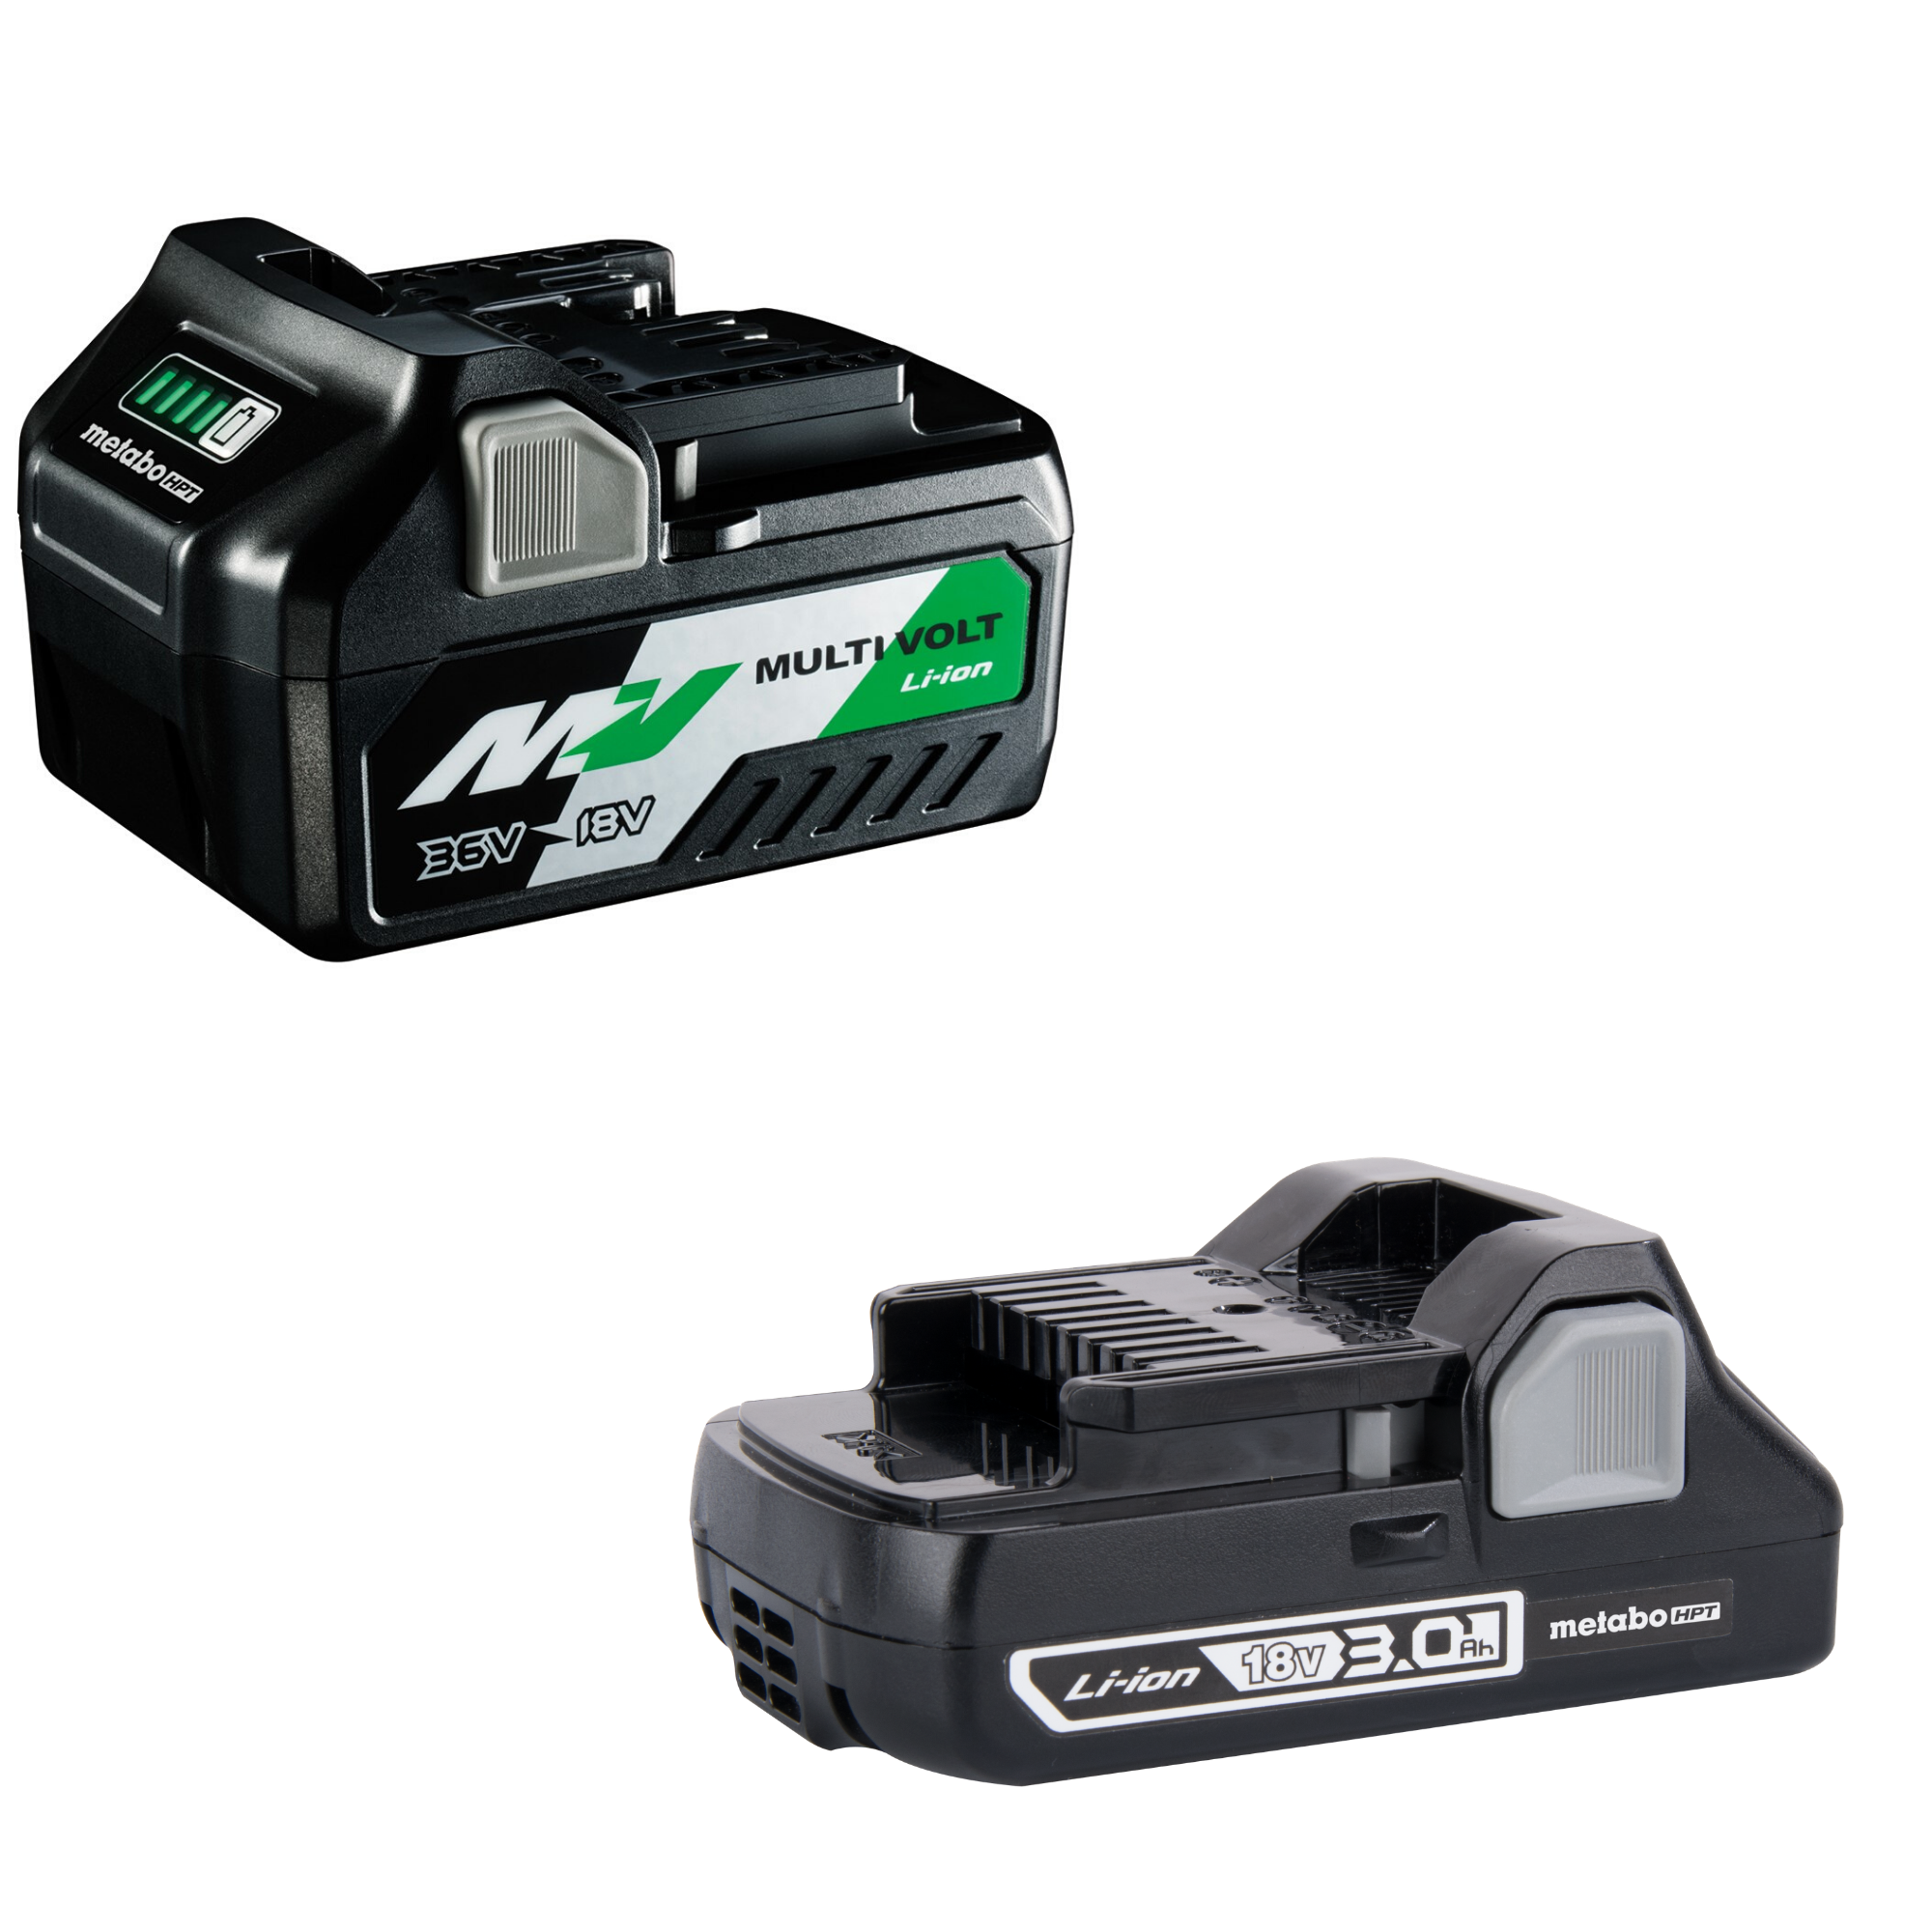 MultiVolt and Compact 3.0 Battery